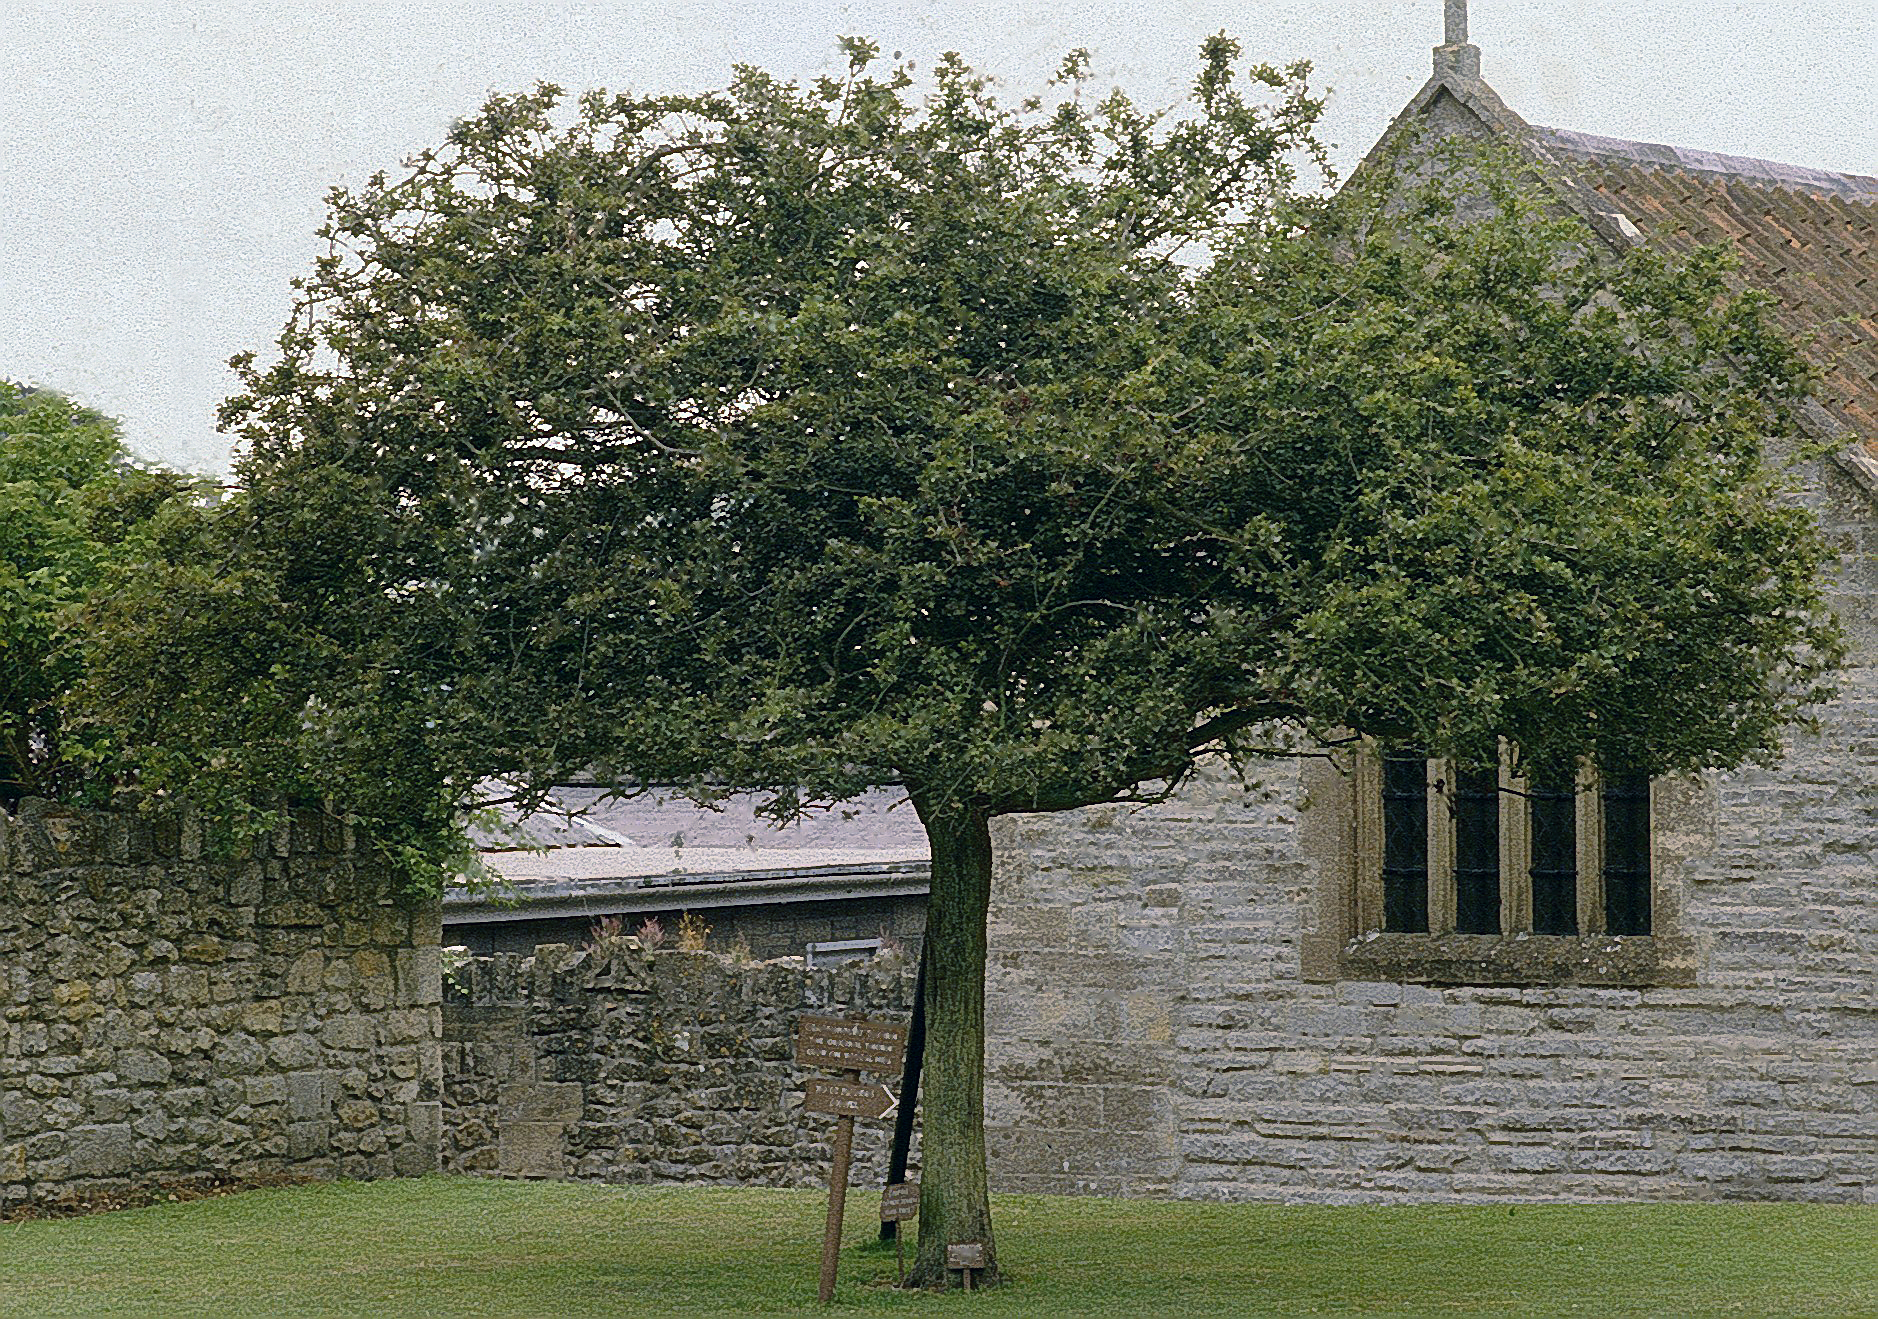 An image of the previous Holy Glastonbury Thorn.